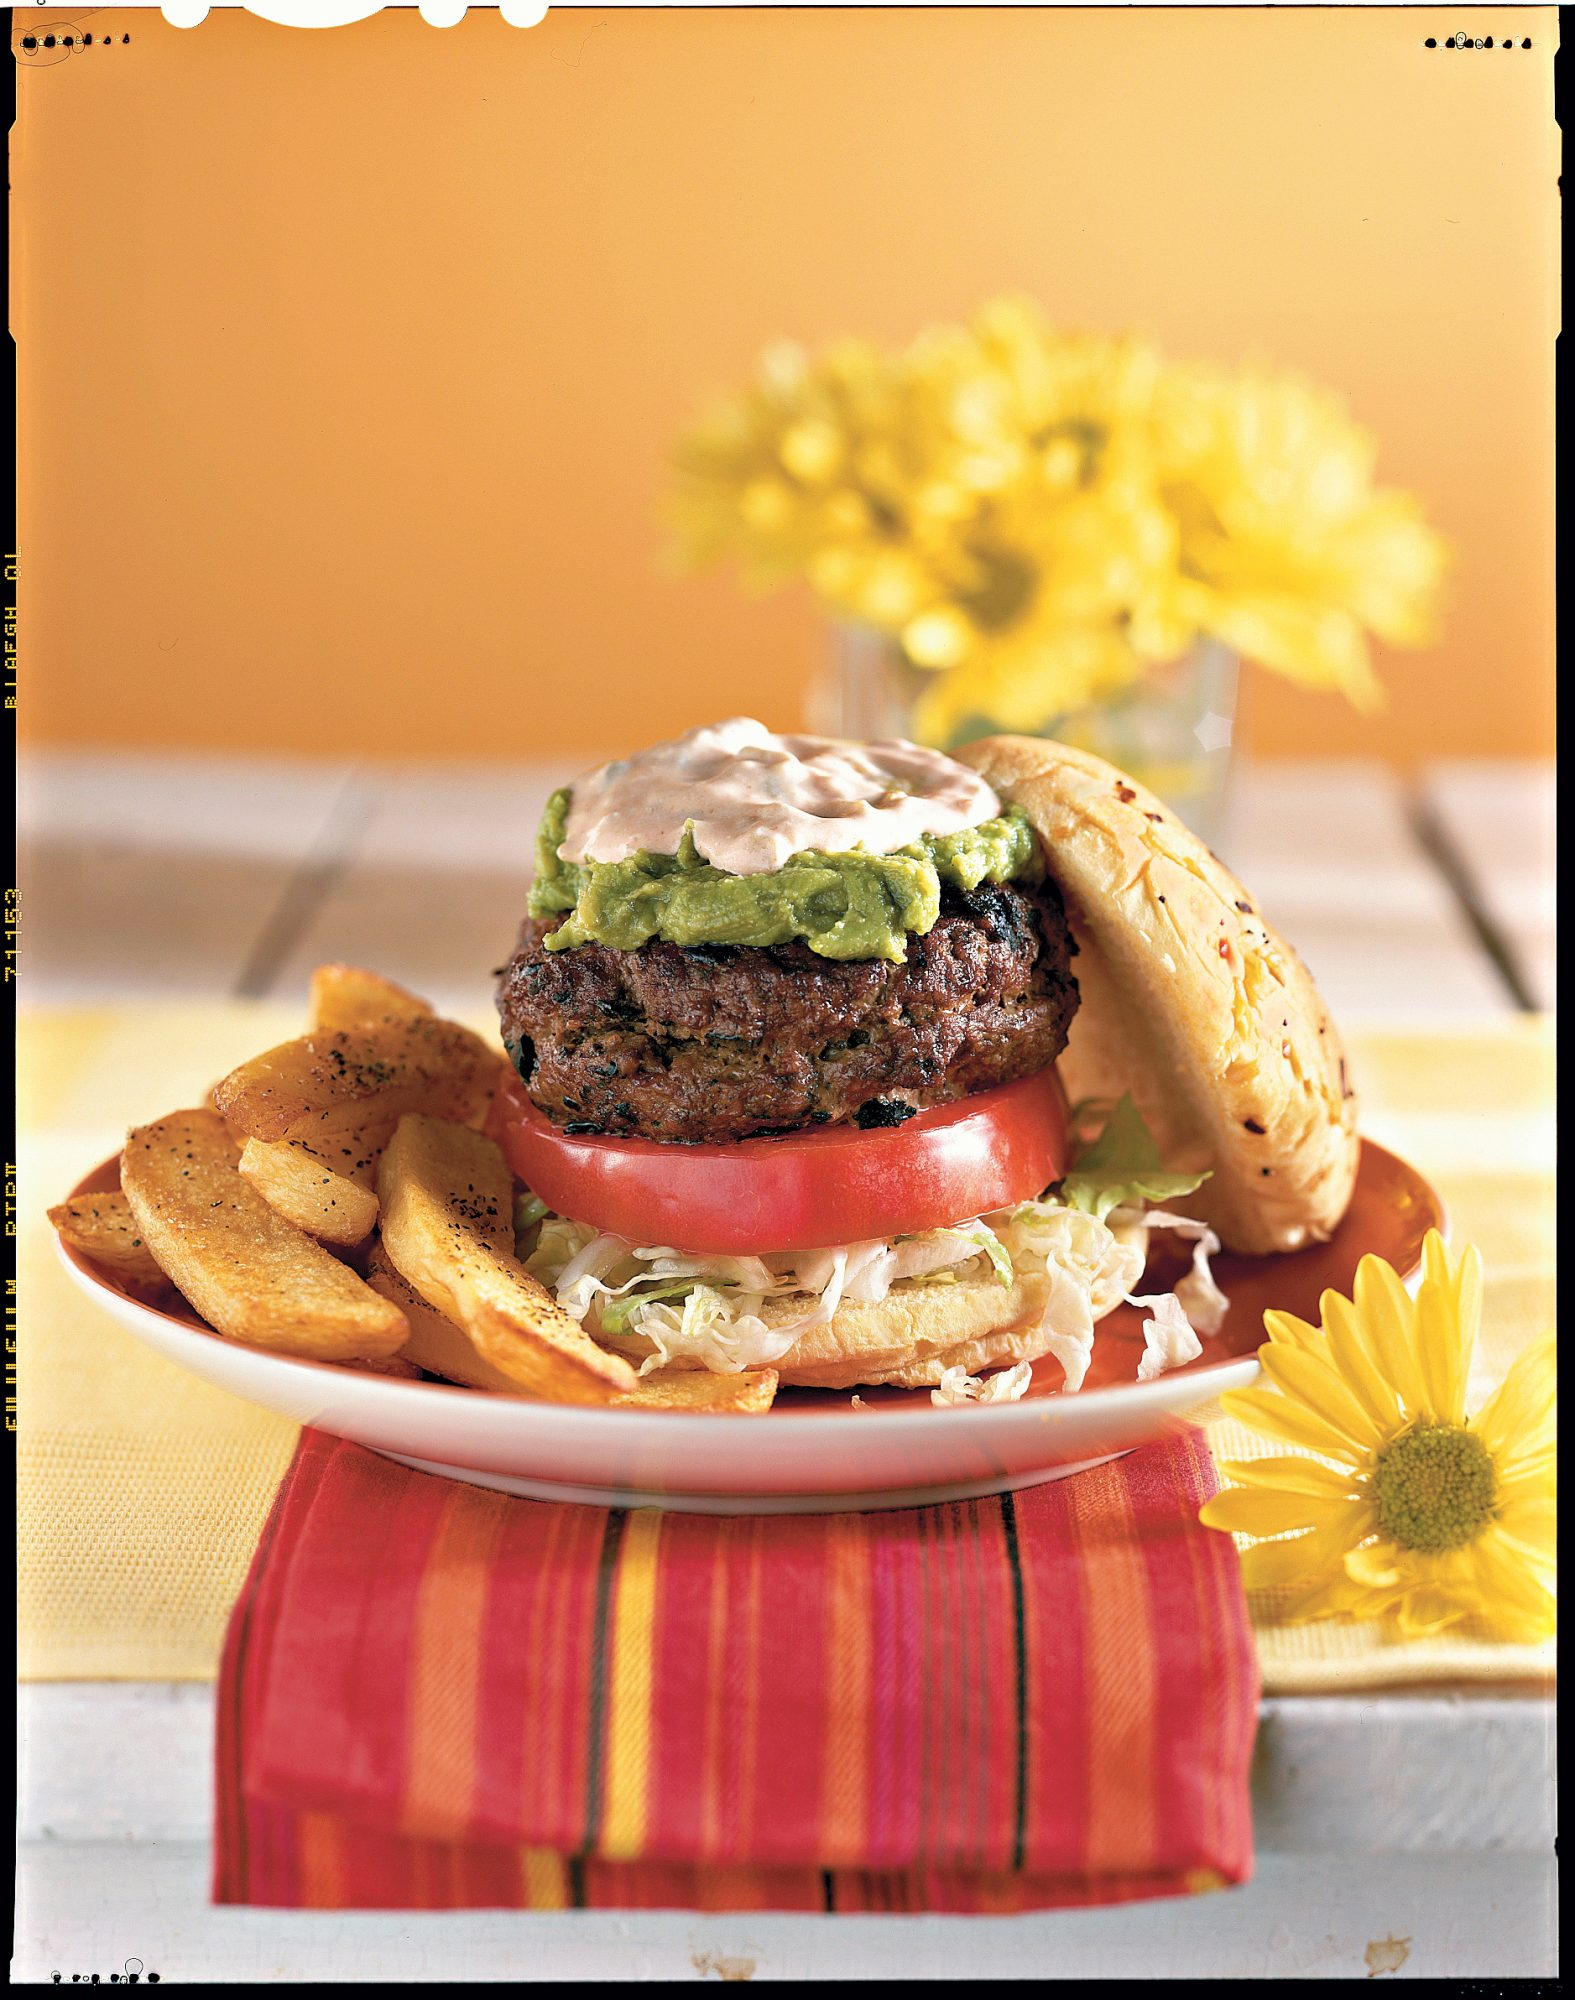 Grilled Burgers and Sanwiches Recipes: Stuffed Border Burgers